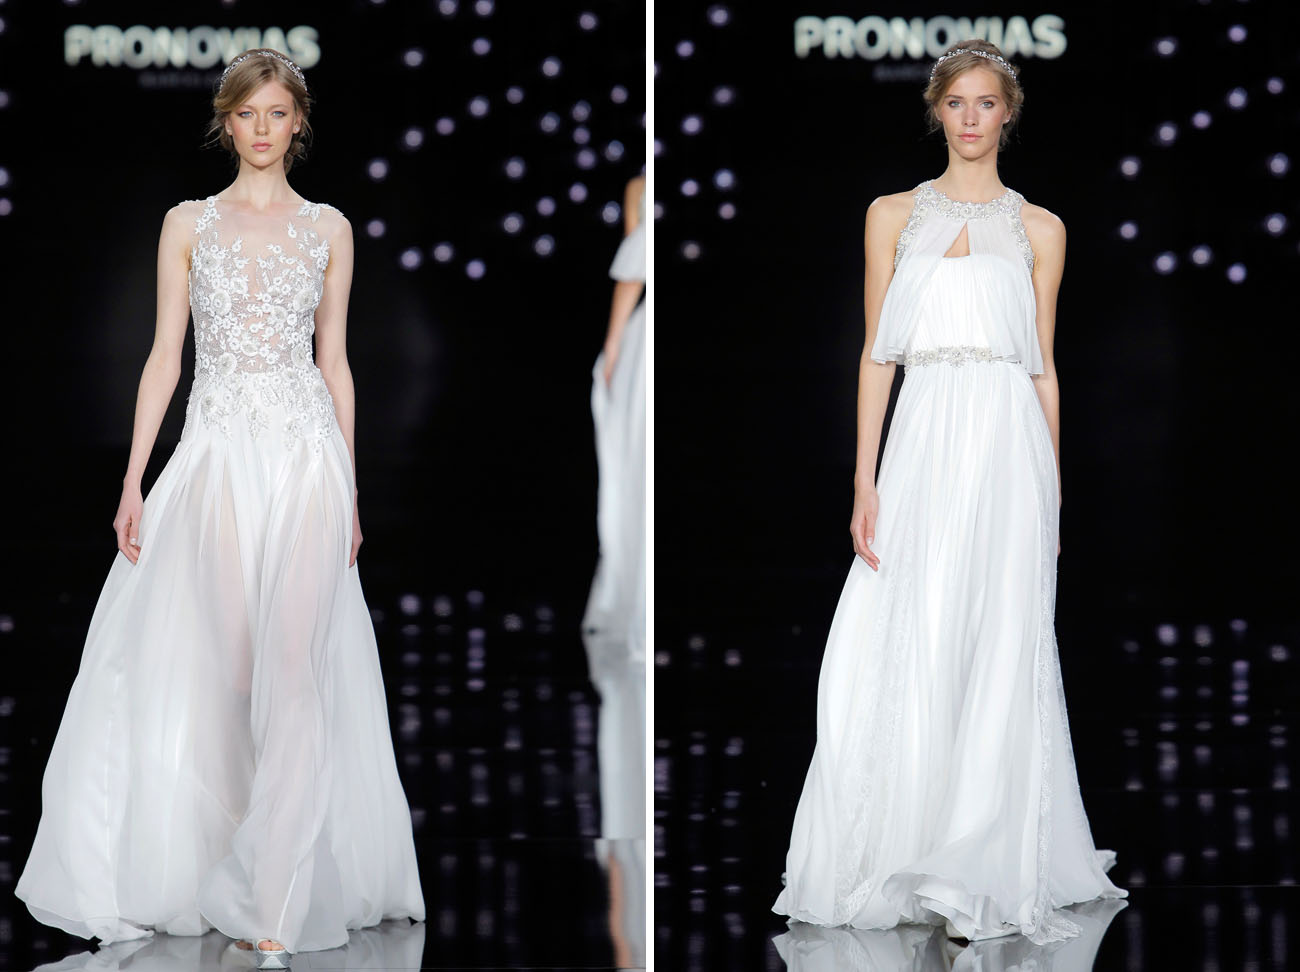 Atelier Pronovias 2017 Collection Show